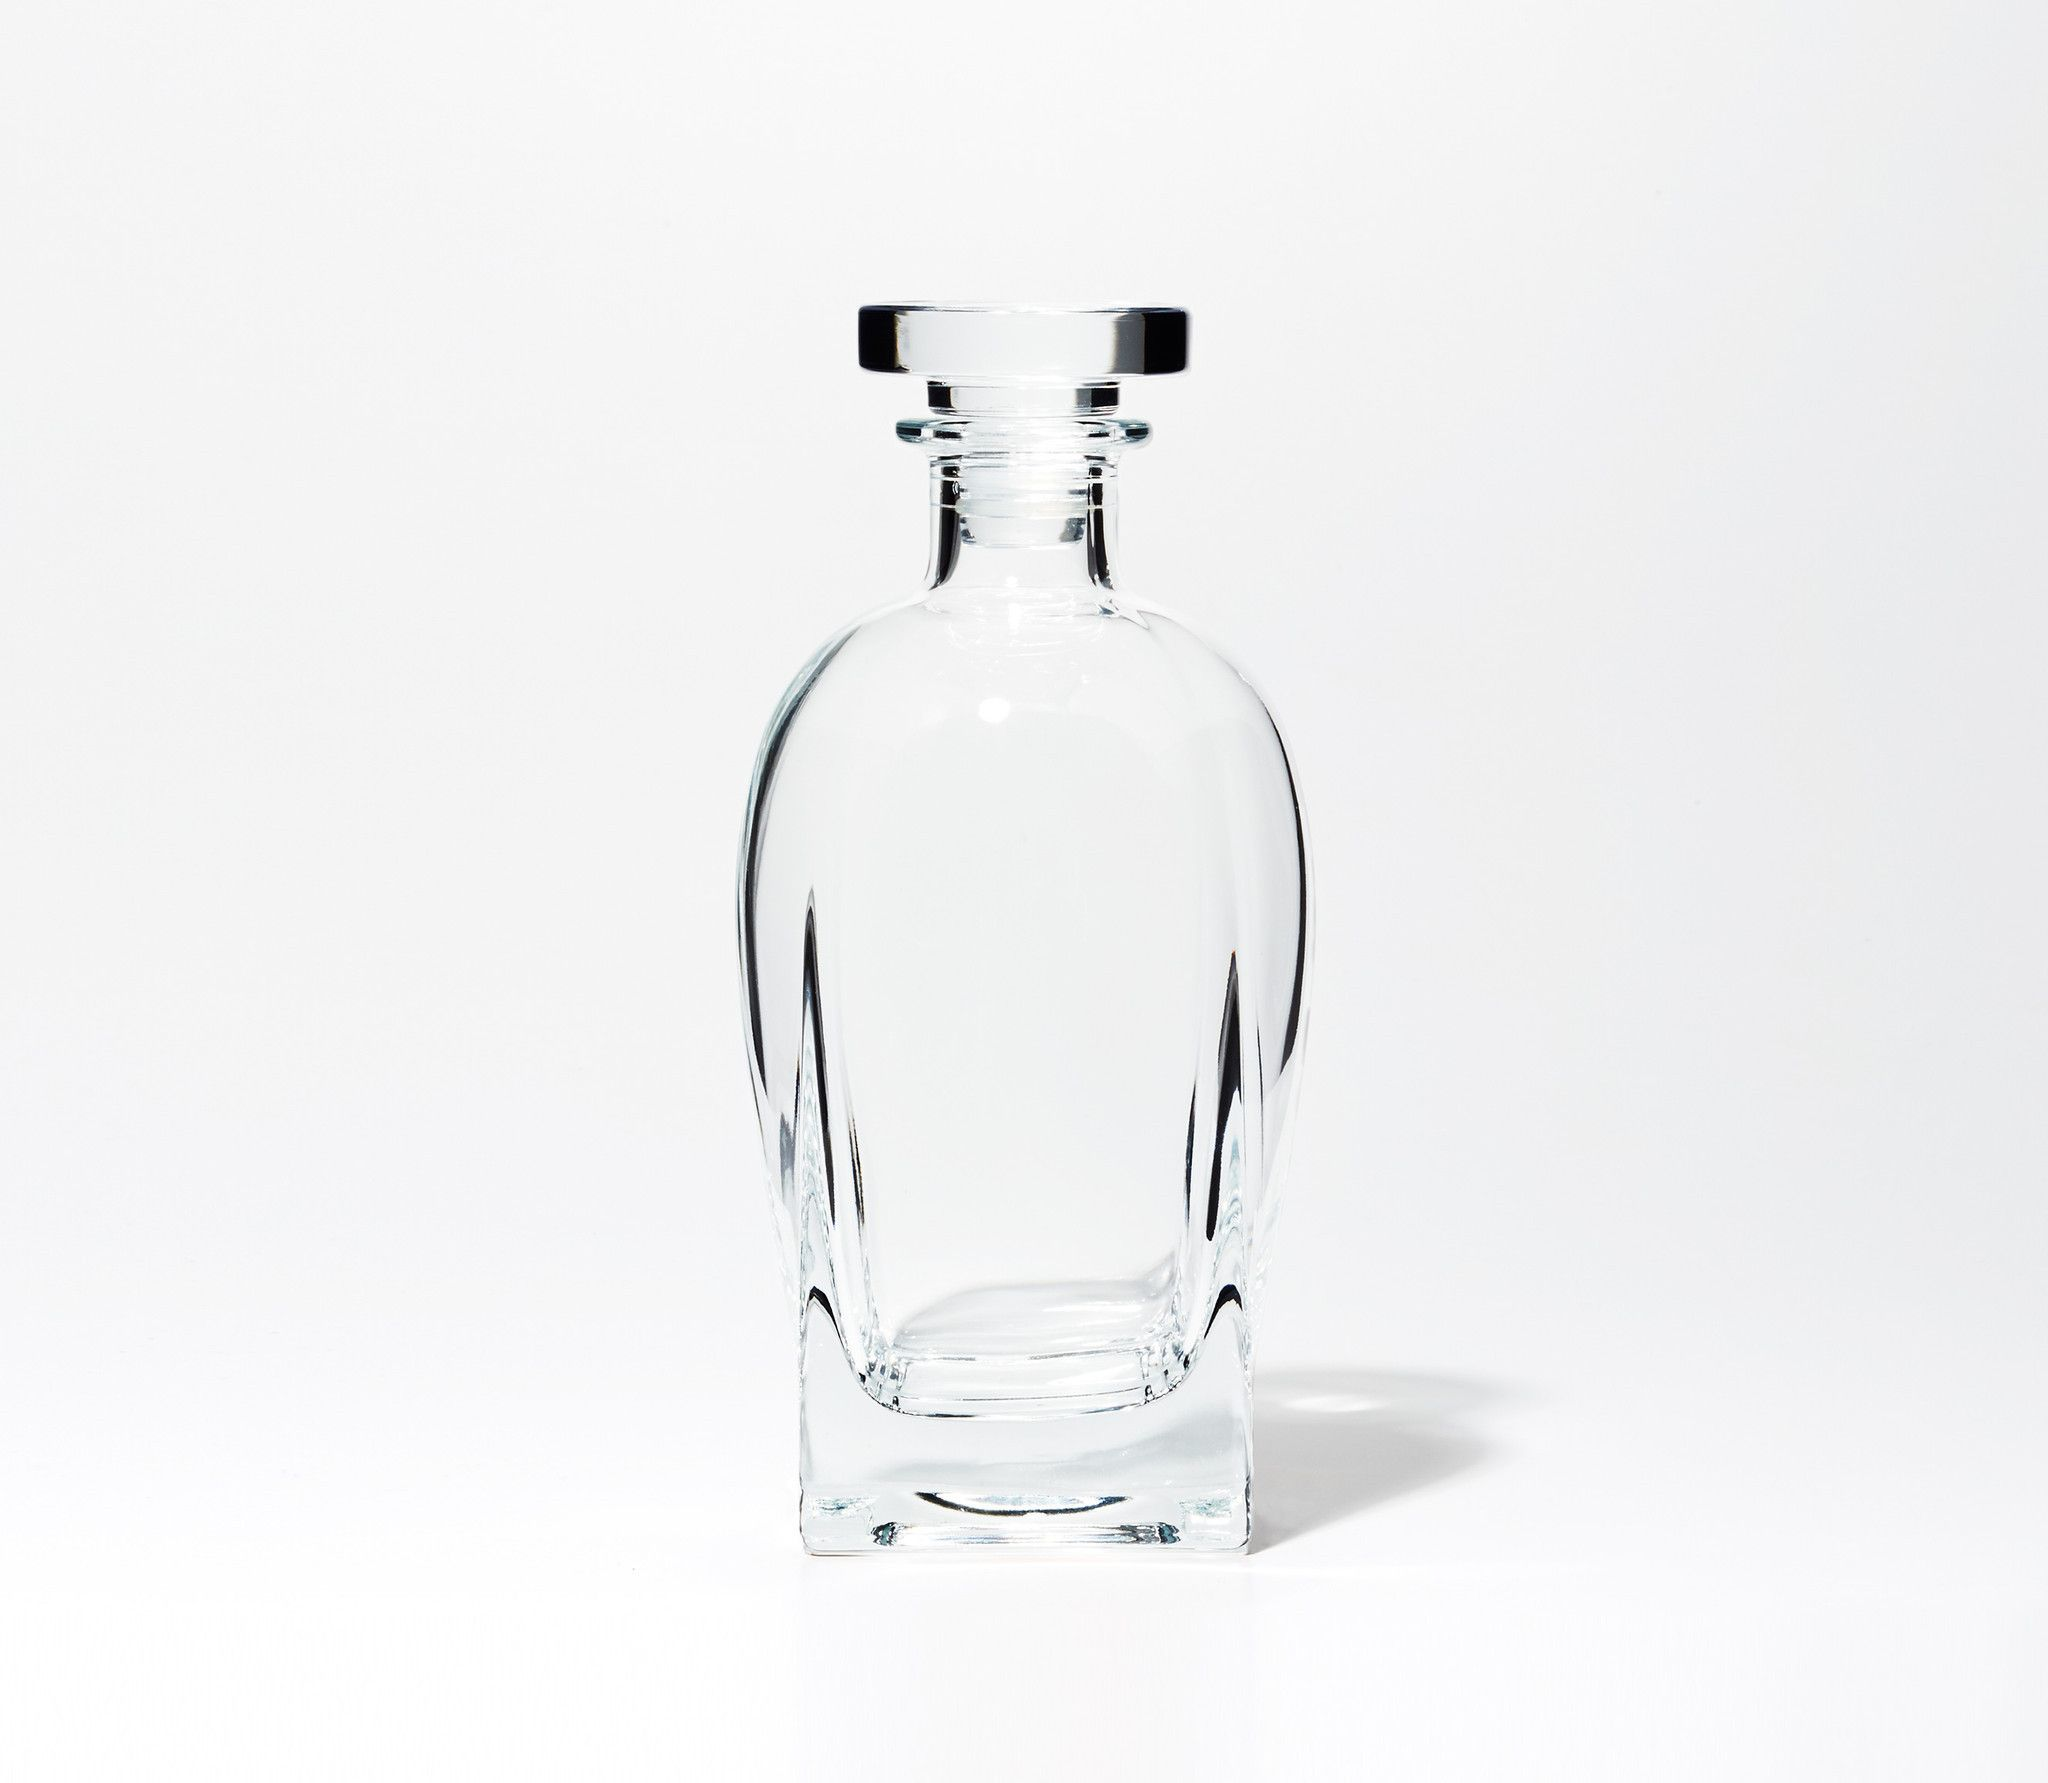 This whiskey set will breathe life into your spirits. Snowe's whiskey decanter and whiskey glasses set add a touch of class to any affair.